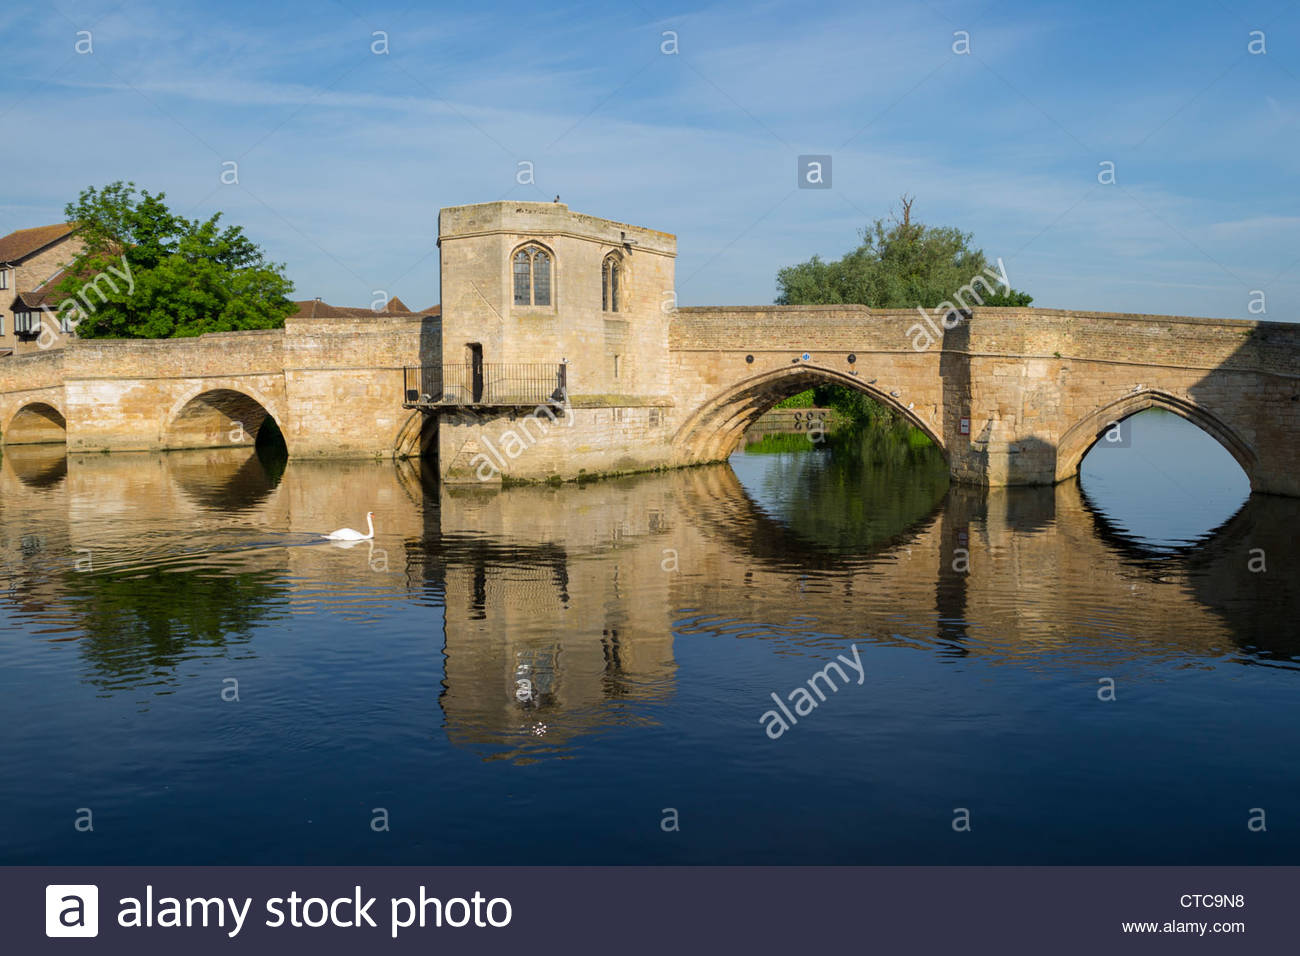 The bridge over the River Great Ouse in St Ives, Cambridgeshire, in the early morning sunlight - Stock Image